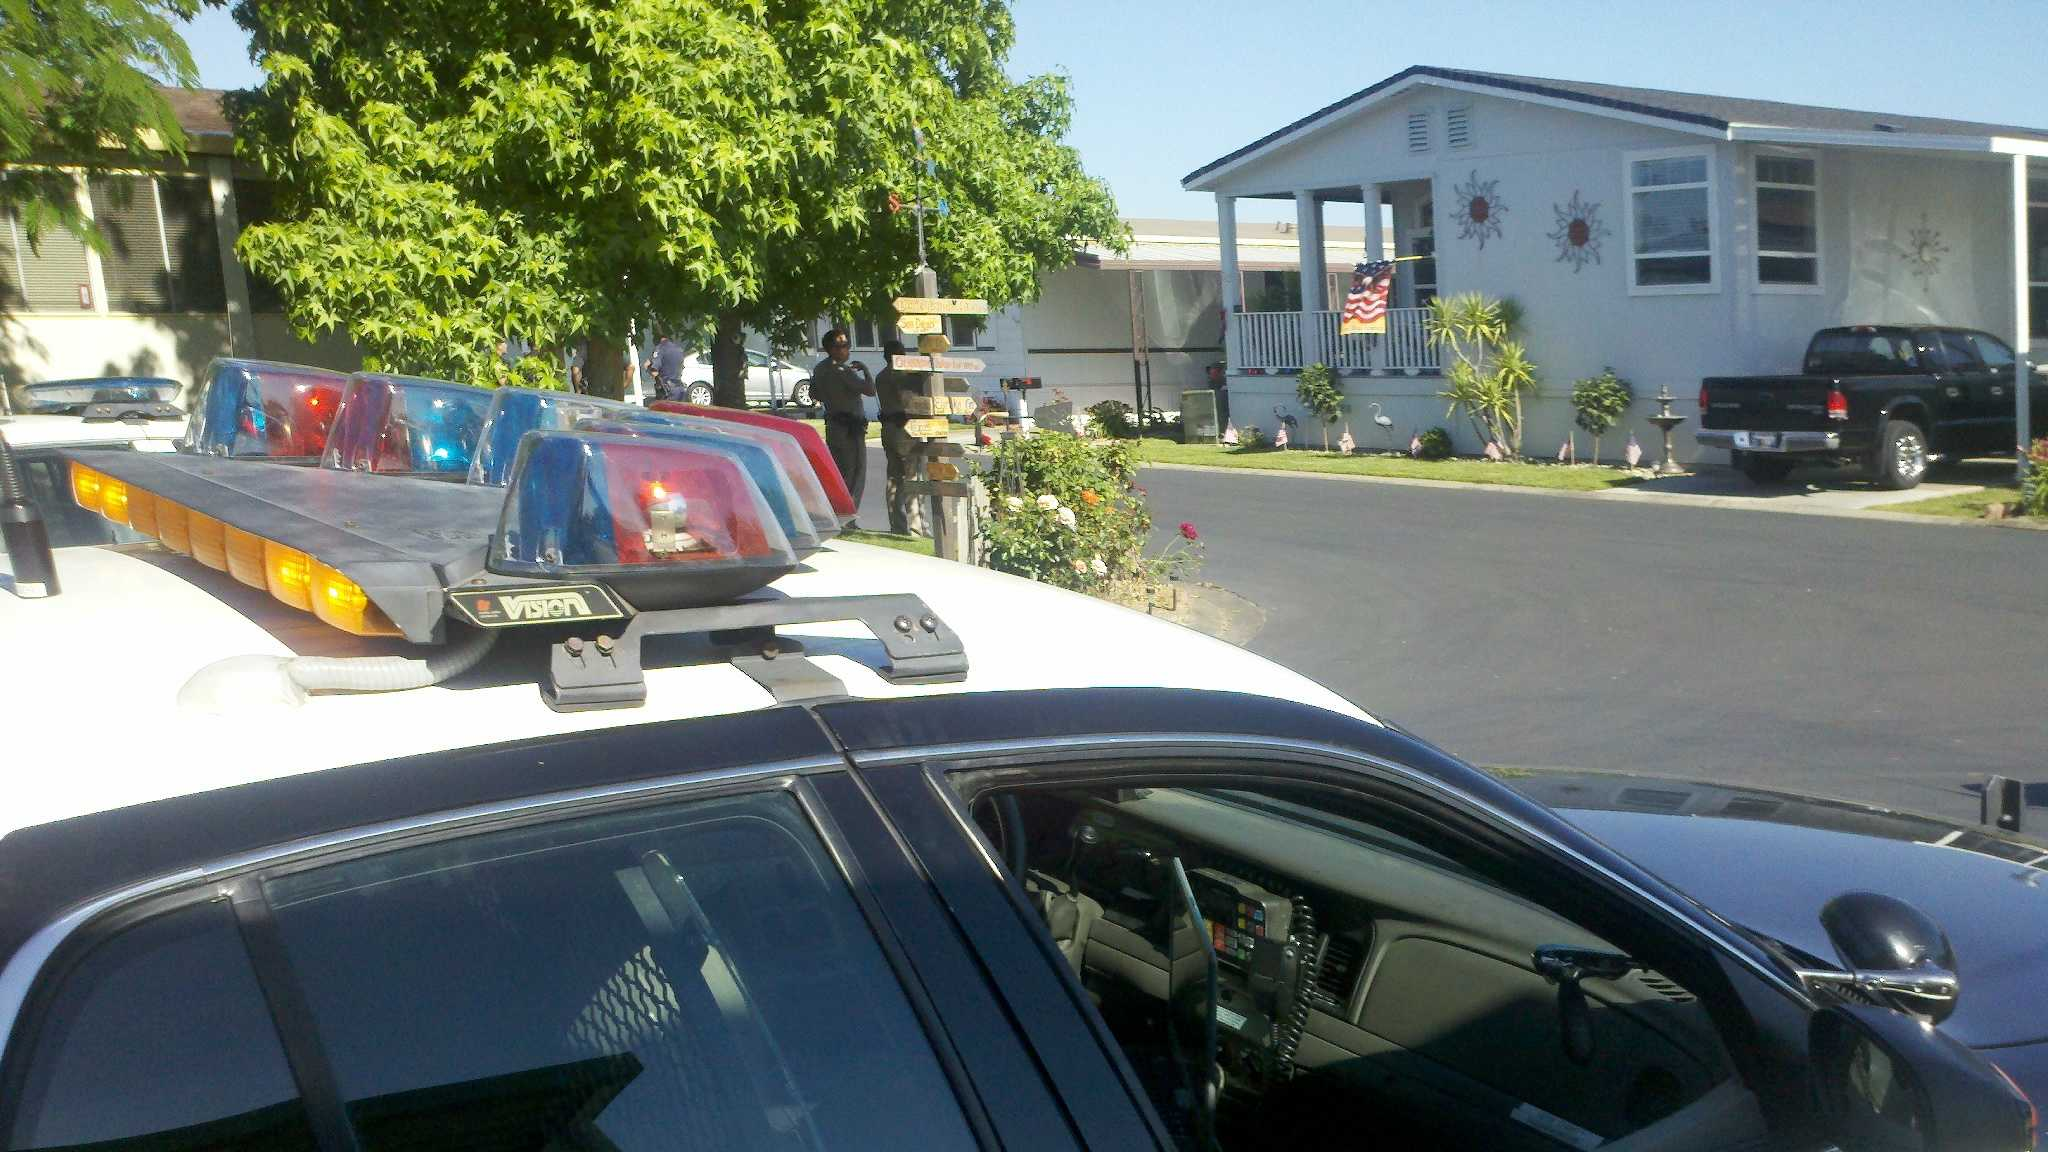 Two people were taken into custody Tuesday after shots were fired earlier this morning in a stolen vehicle chase in Sacramento County, a sheriff's department spokesman said.